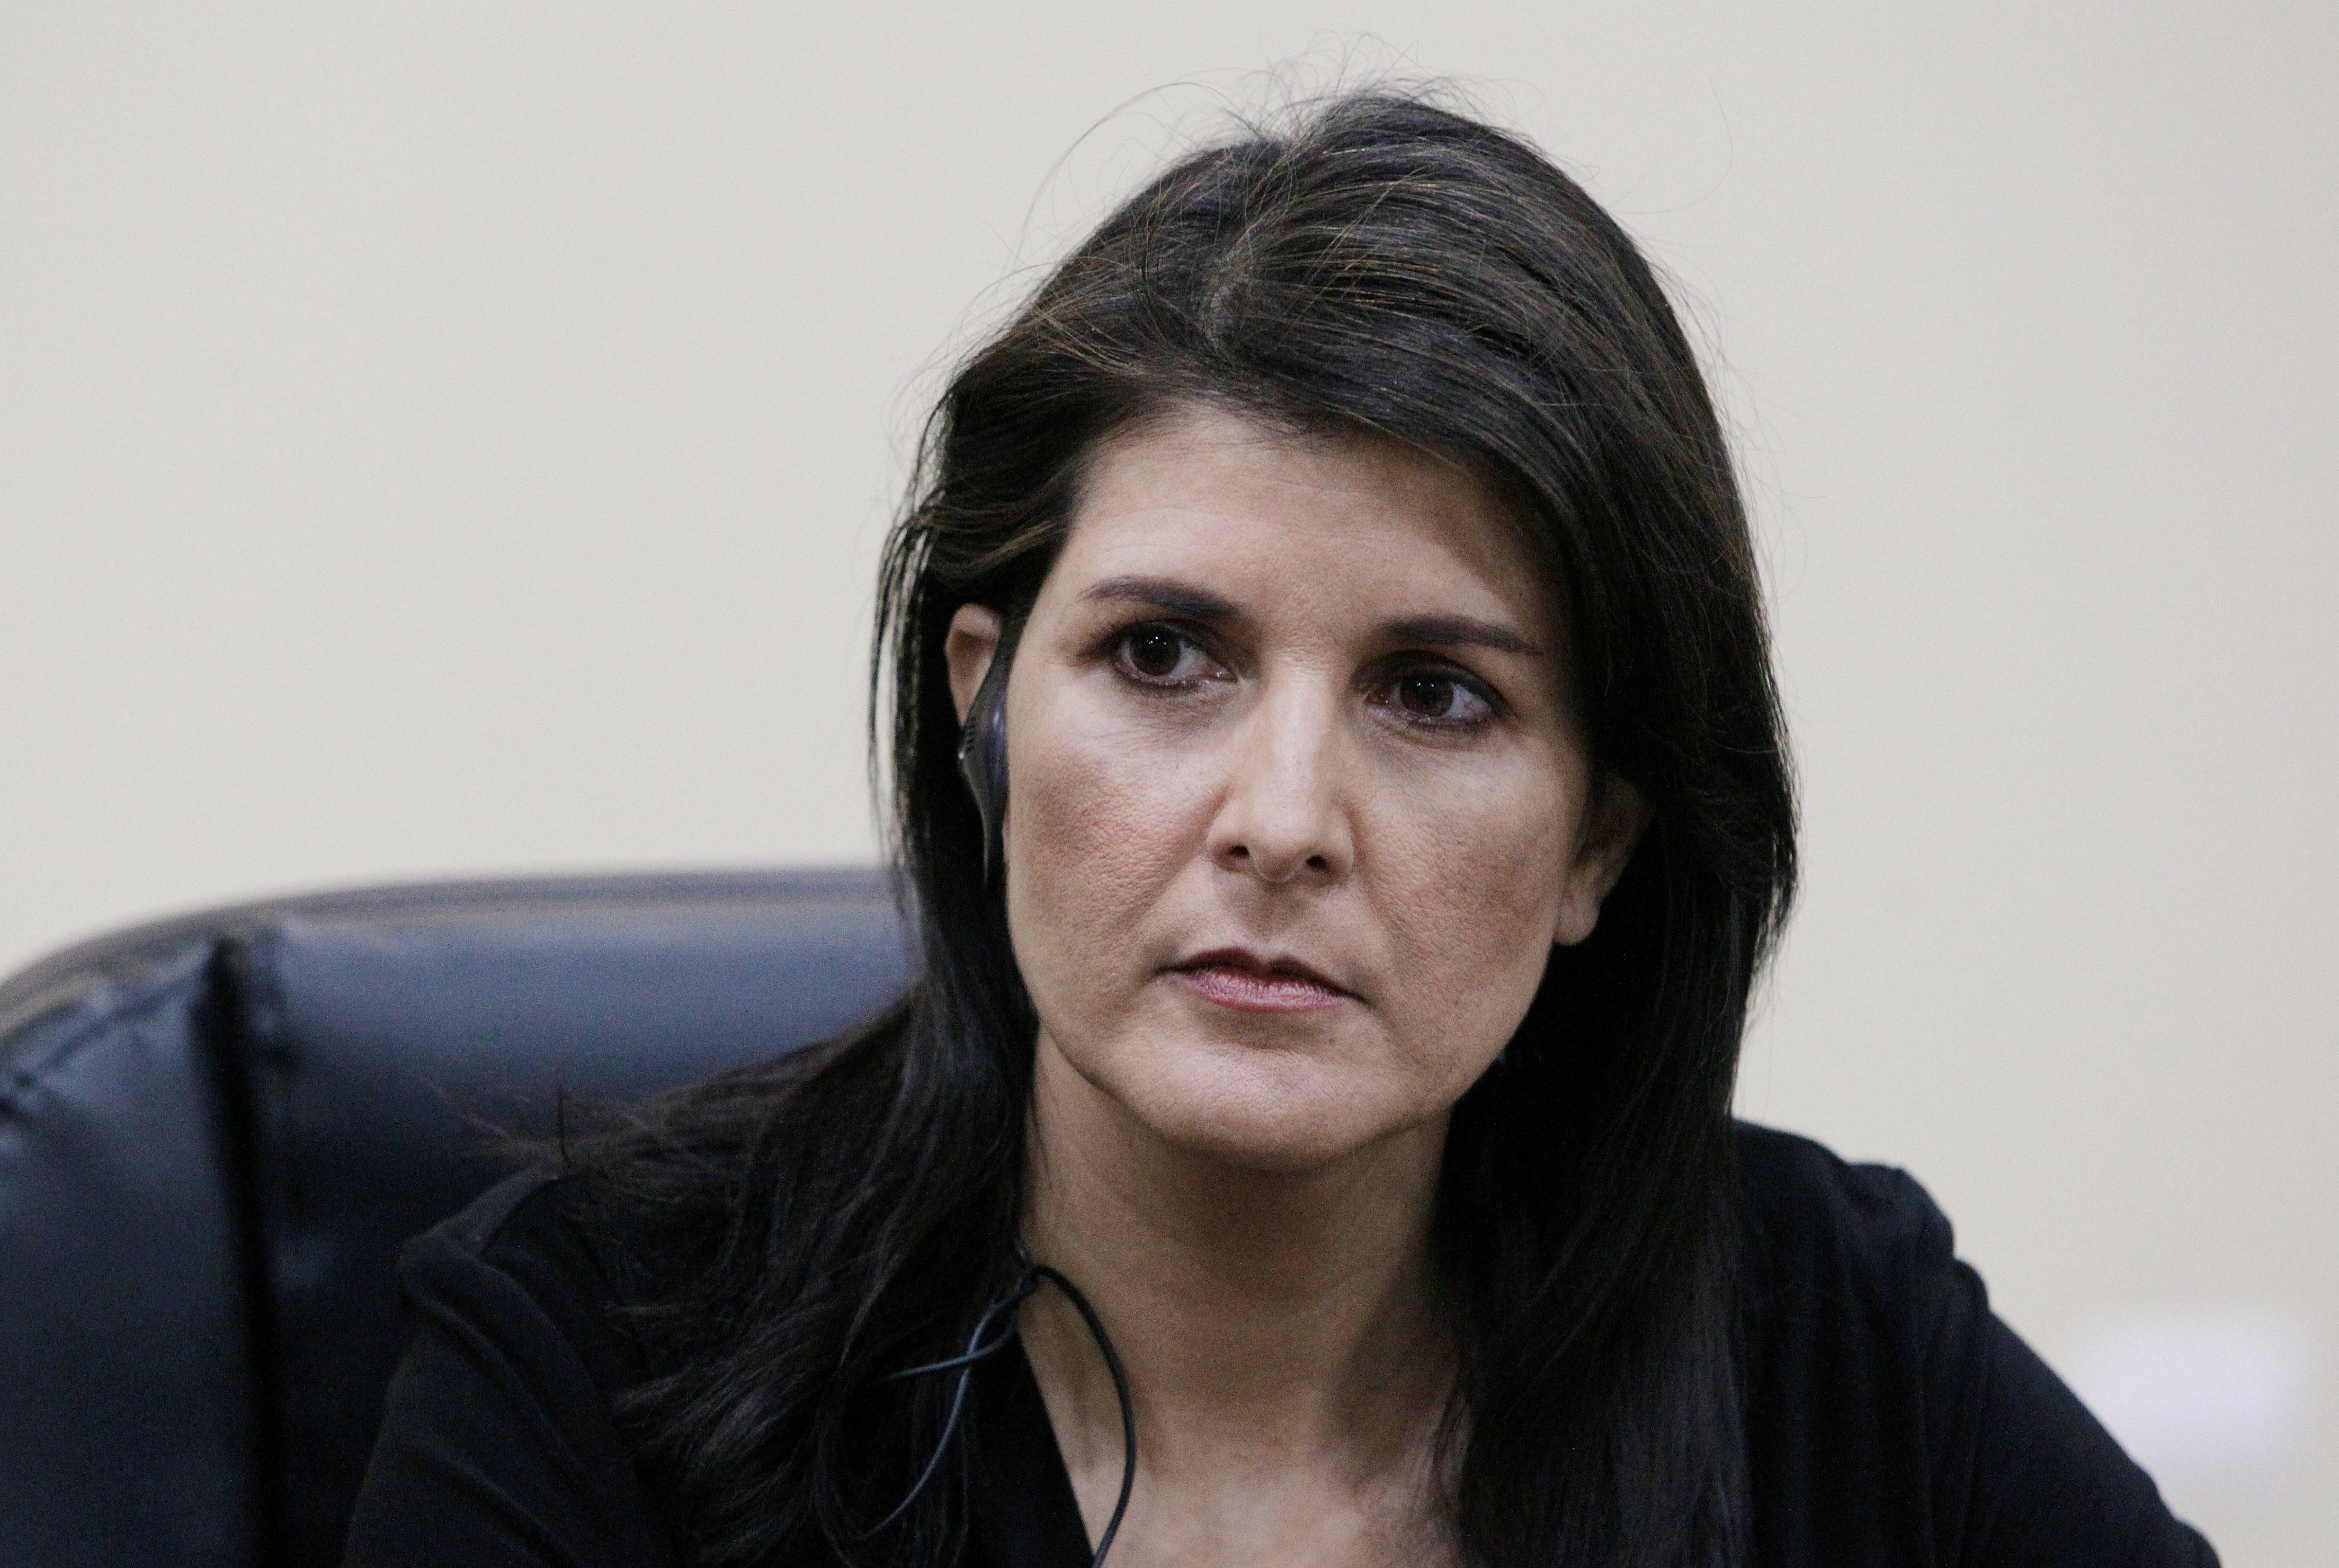 United States ambassador to the UN Nikki Haley reportedly set to resign